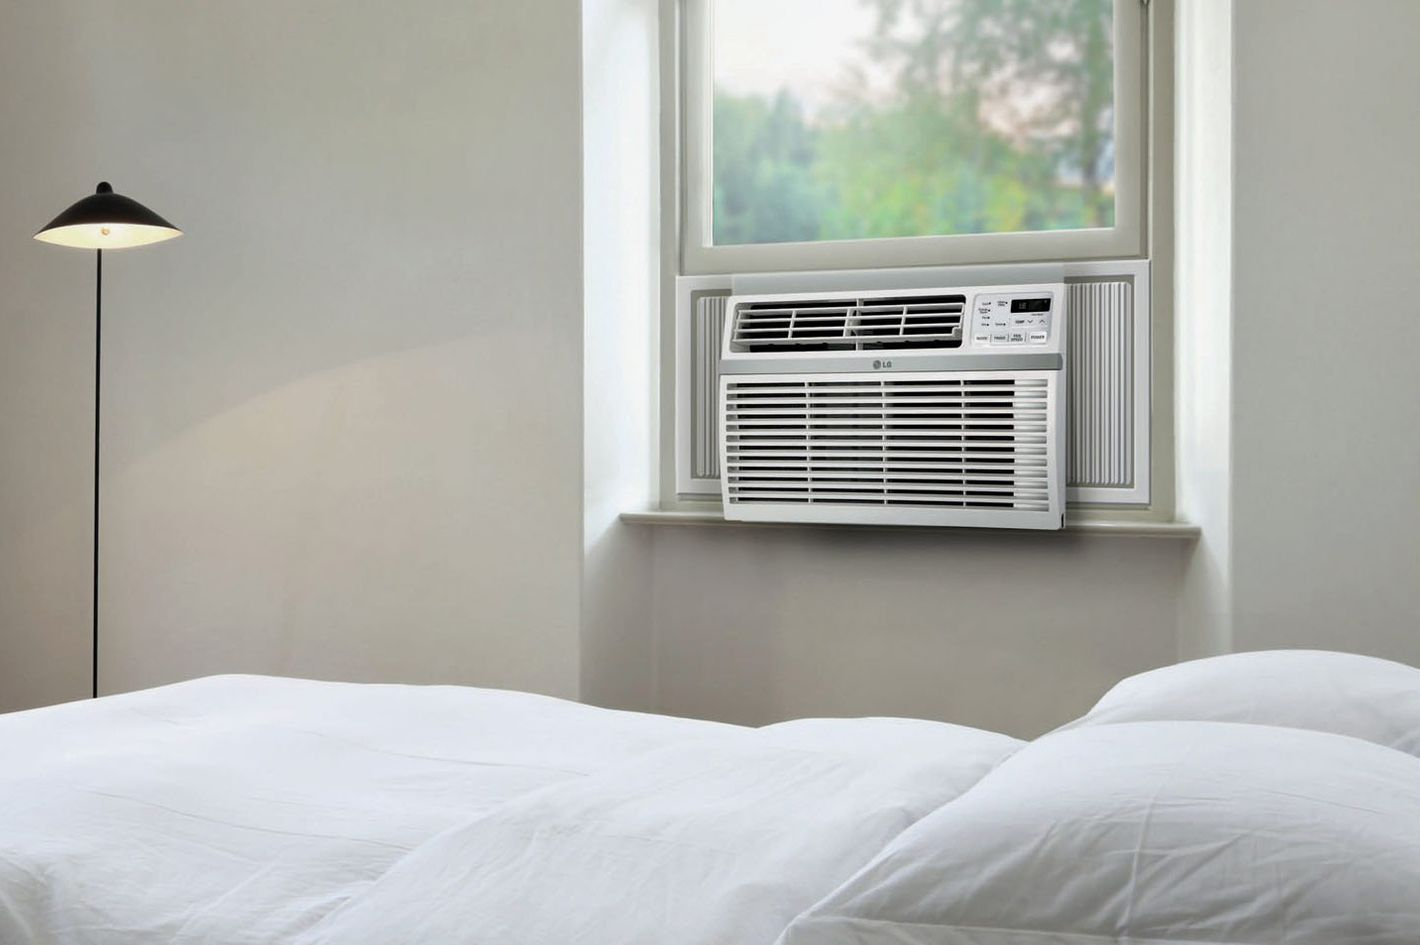 Bedroom Air Conditioner | The 9 Best Window Air Conditioners 2018